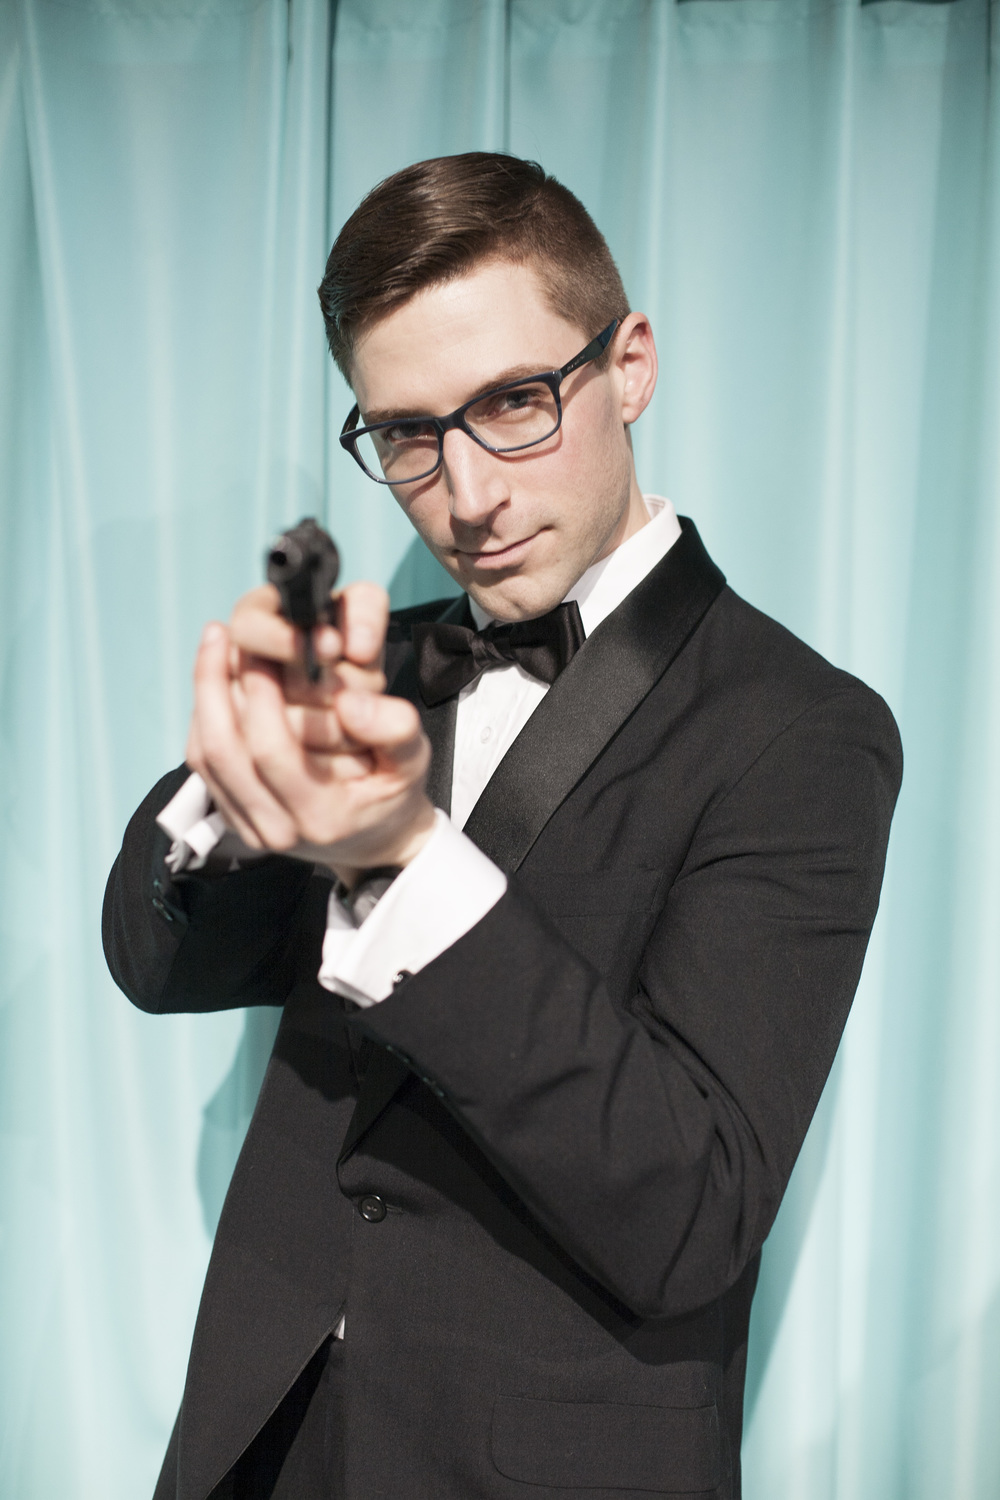 Justin Barisich as James Bond | Photo Credit: Tim Song